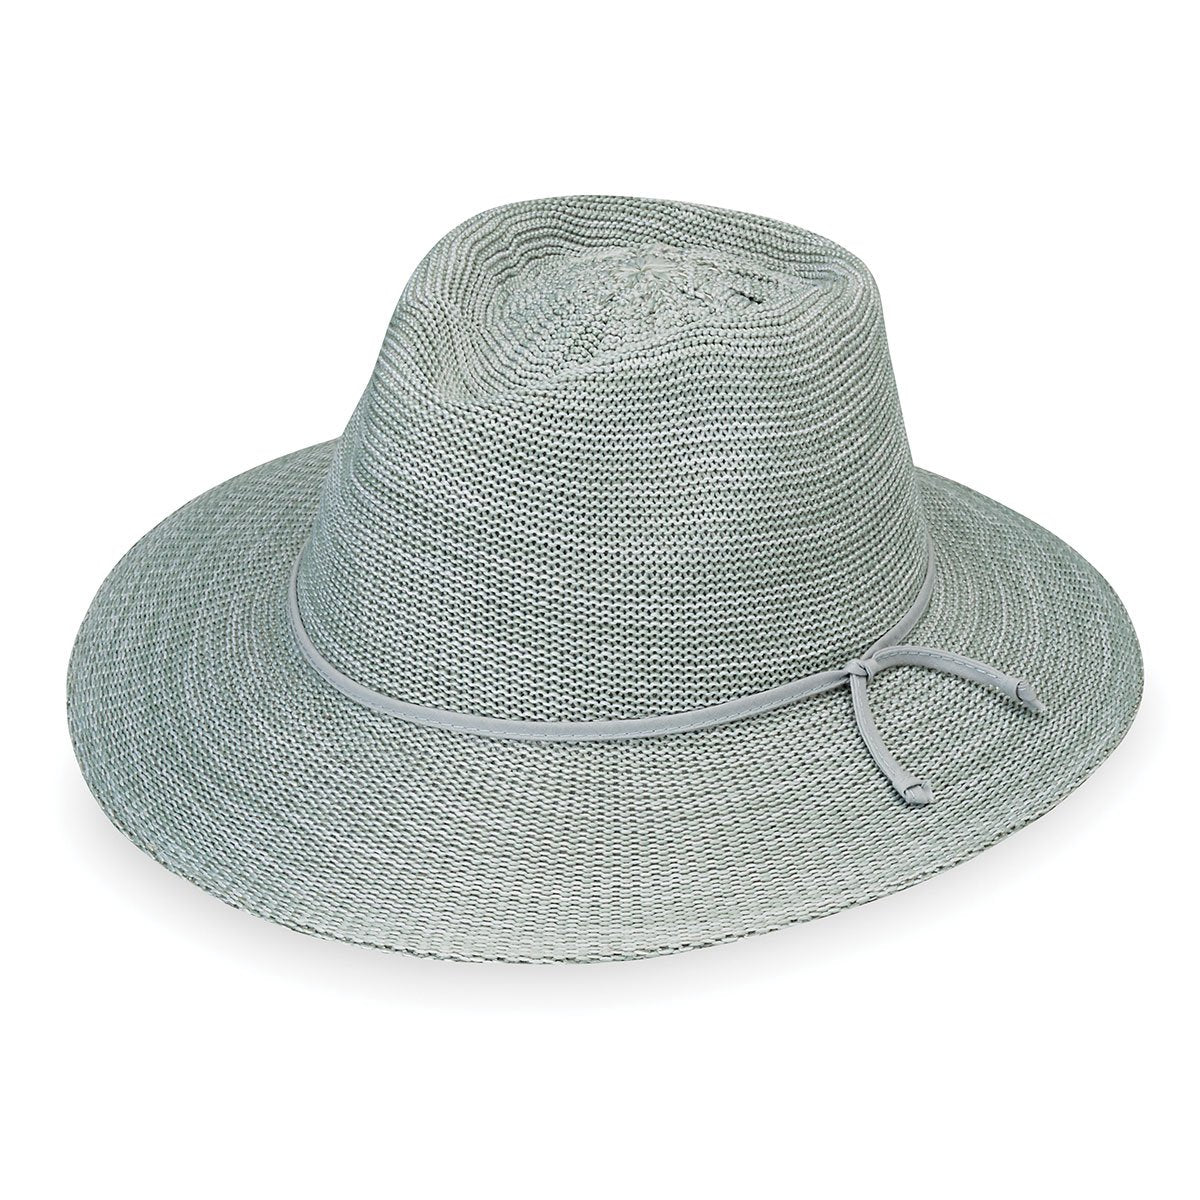 0a5a4161f39d7 Stylish Straw Fedora - Women s - Blocks 97.5% of UV Rays – Wallaroo ...